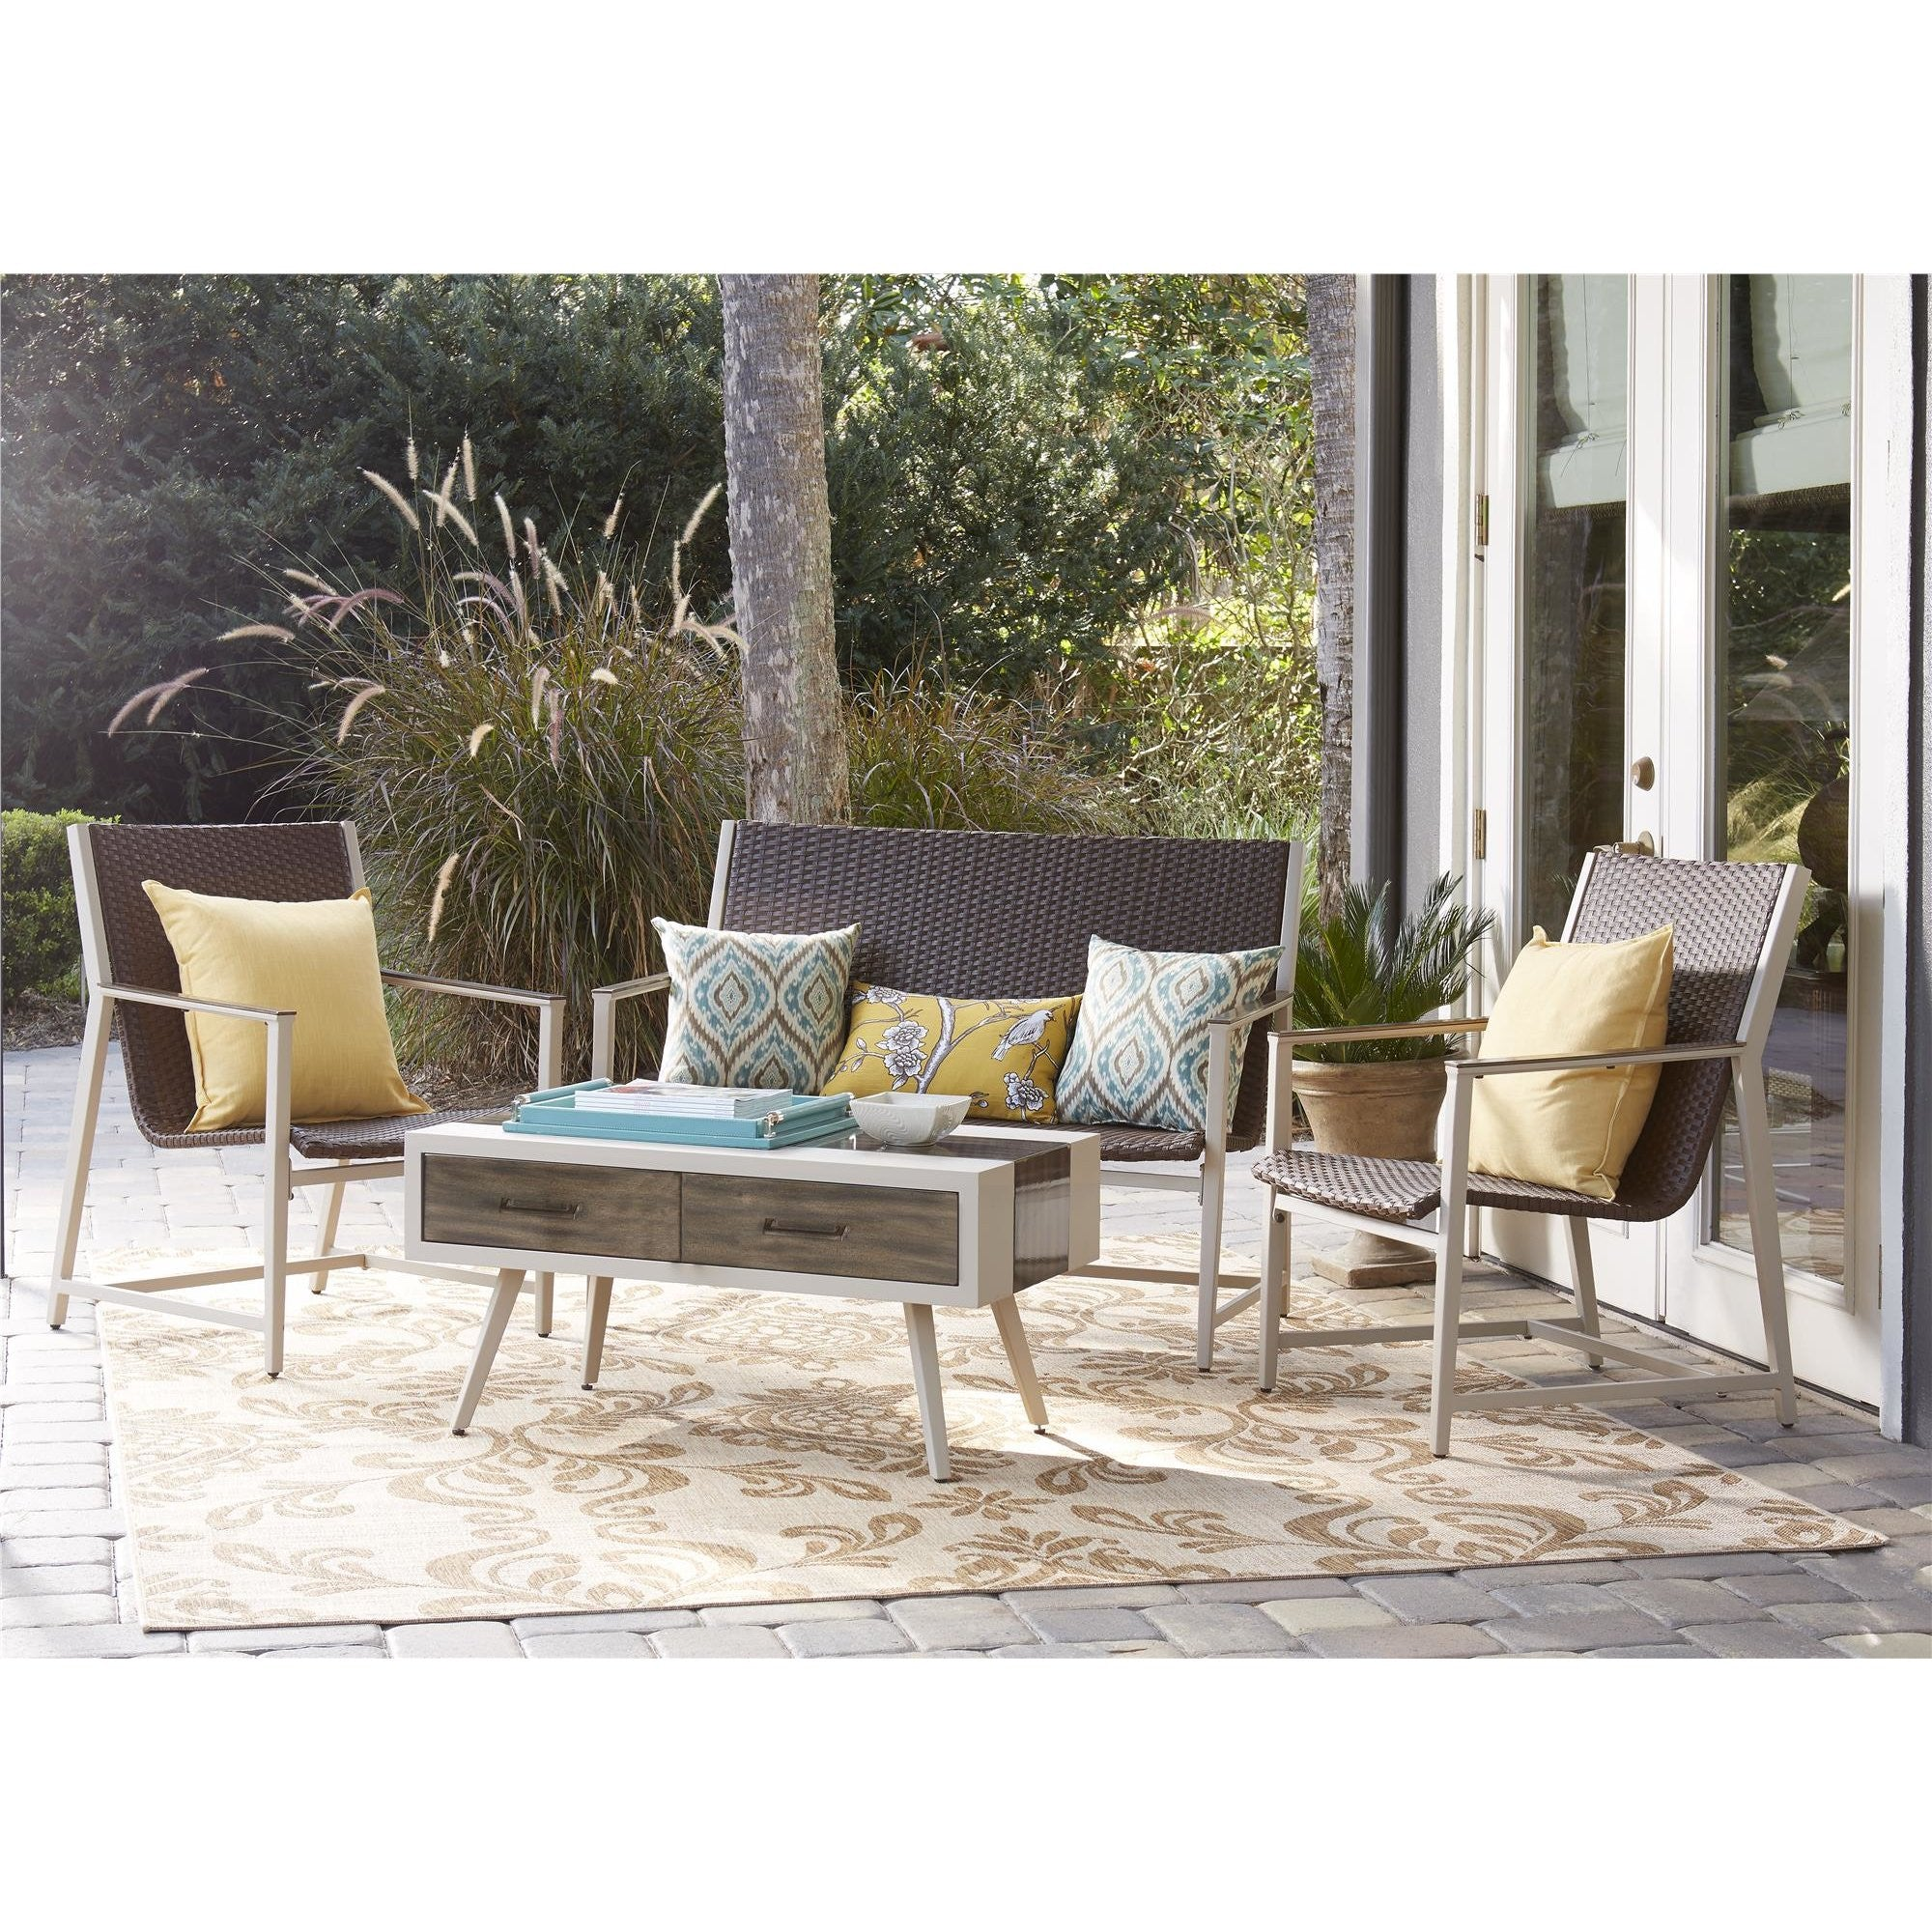 MODERN Mid-Century 4 Piece Seating Group - Clever and Modern Home and office furniture. Pet Furniture